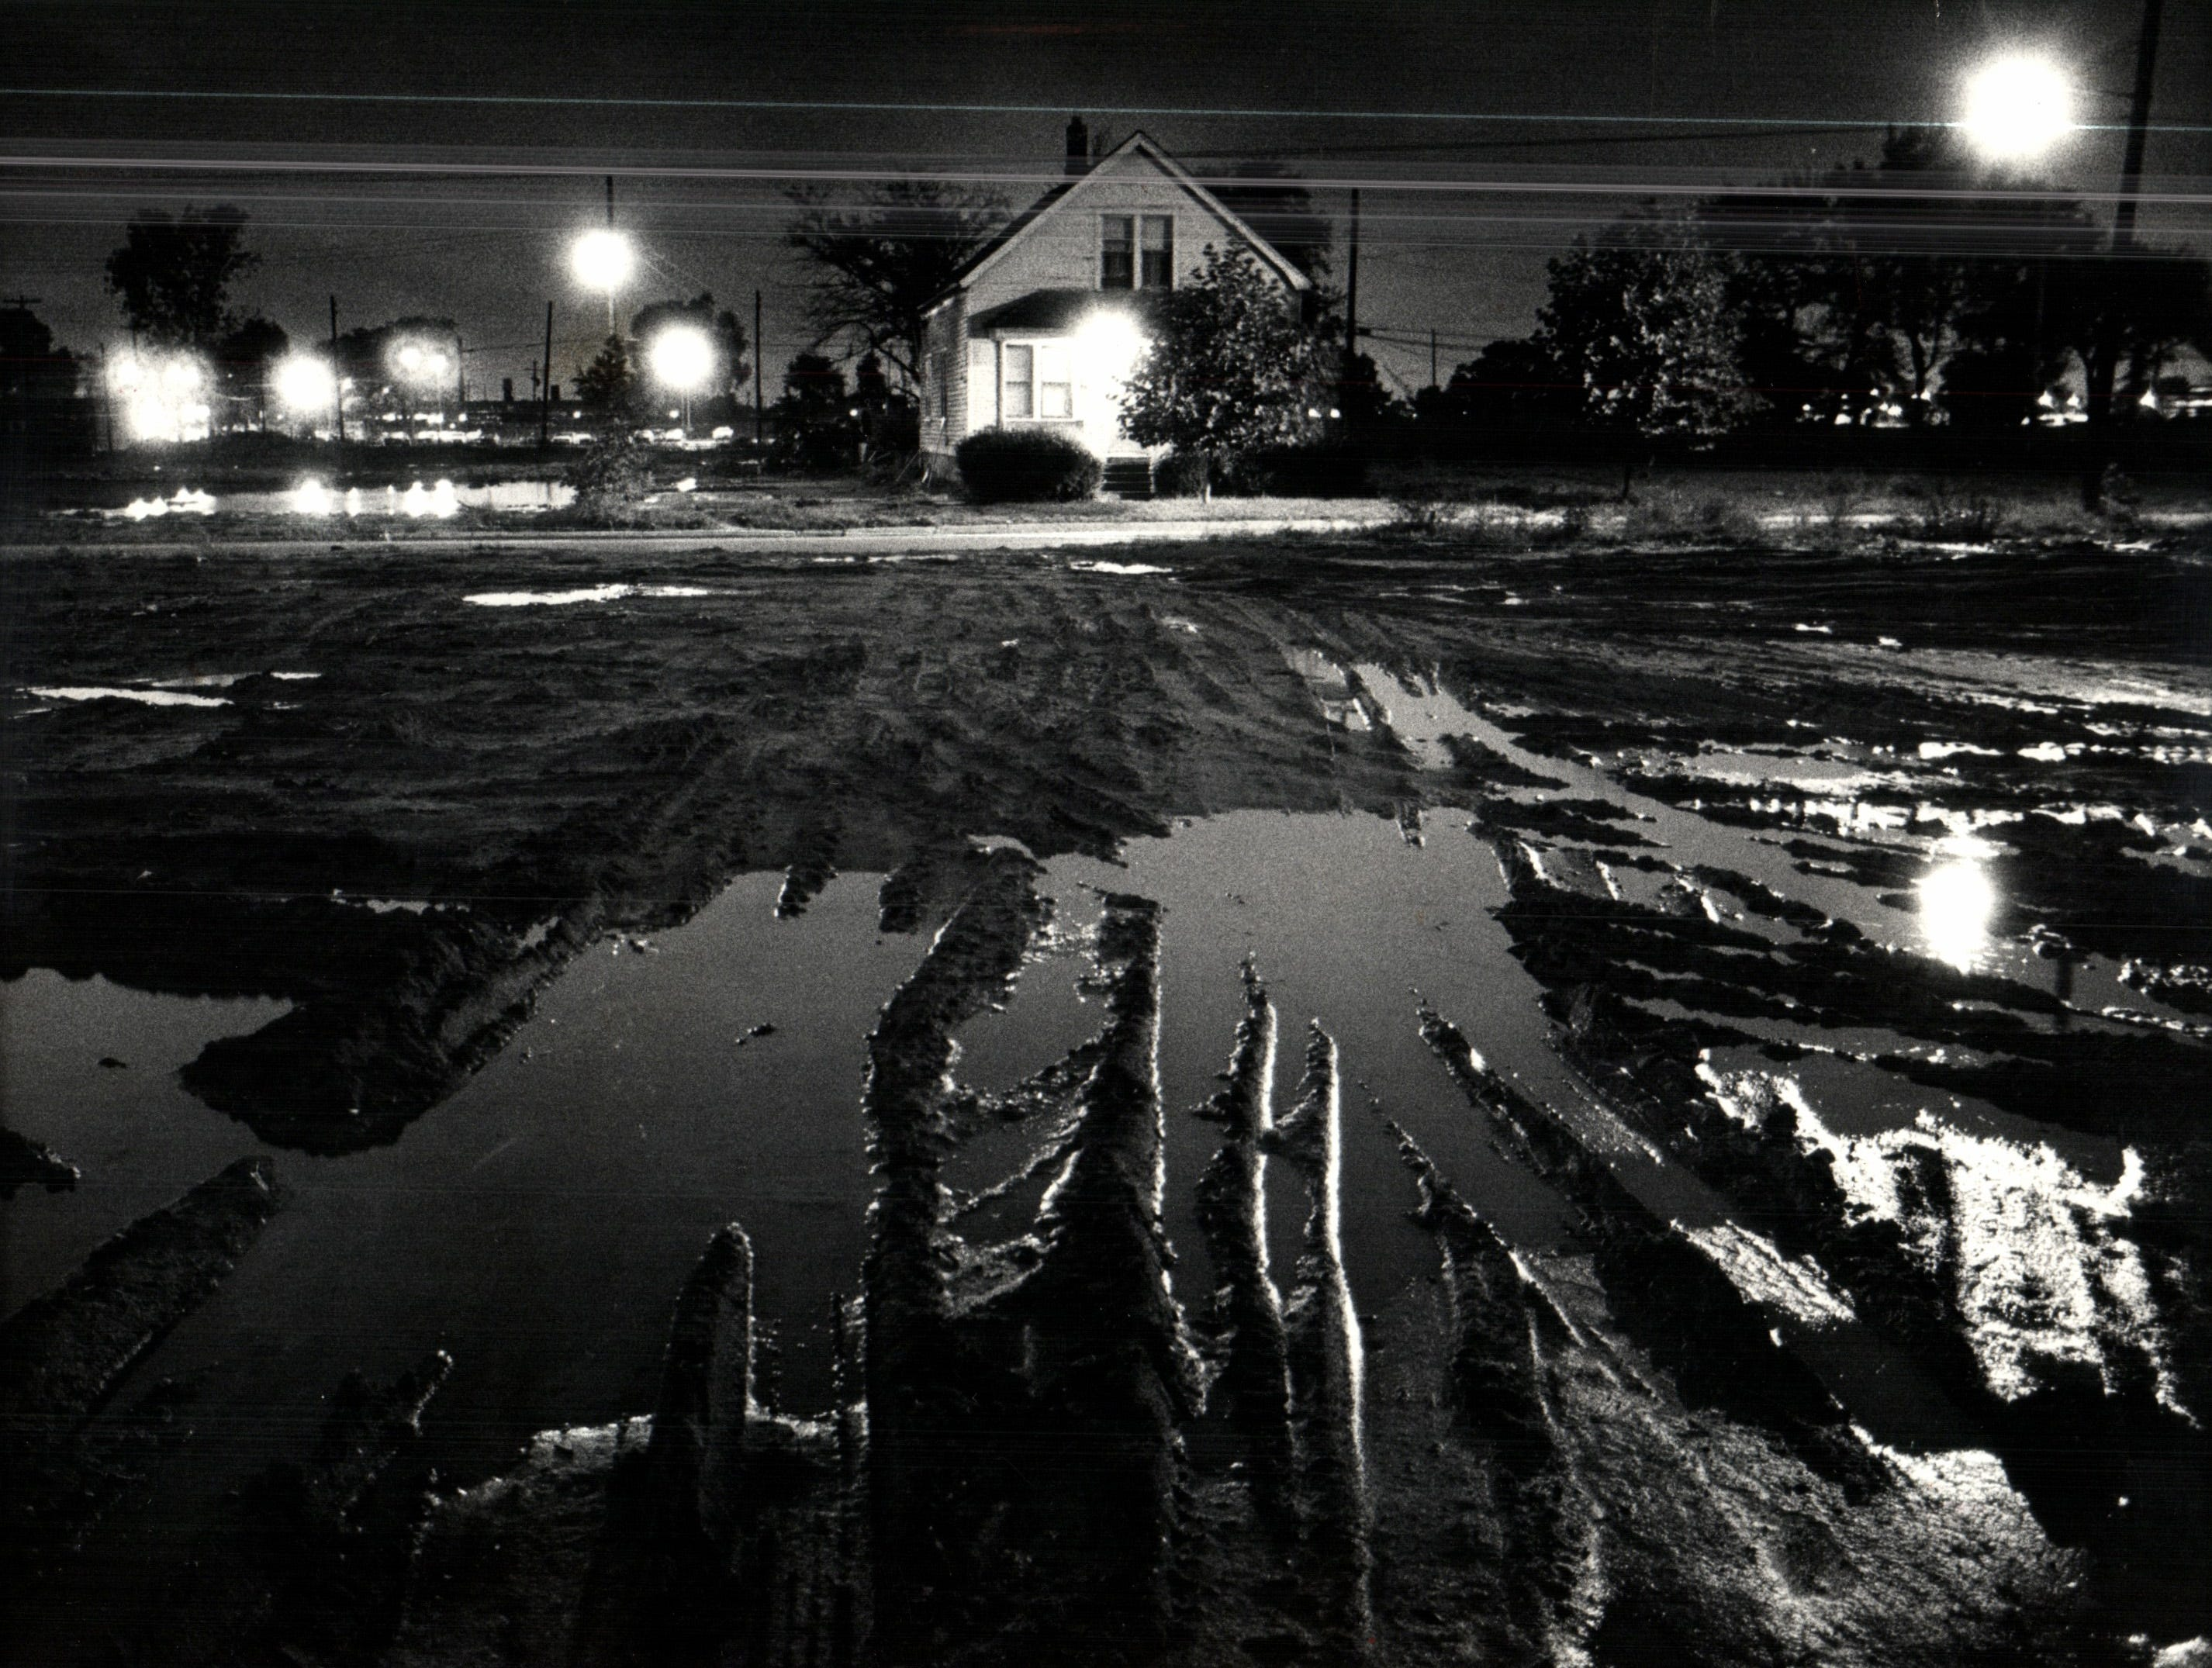 Barbara Sokol's house stood amid the muddy tracks of demolition equipment, an outpost of what once was. Barbara Sokol fought the change not only in her neighborhood, but downtown too, as part of a protest in front of Detroit Archdiocese headquarters on Washington Blvd. The archdiocese as one of a very diverse group of institutions, from the UAW to the Reagan administration, that decided, in essence, that Detroit needed a big new auto plant more than a small old neighborhood.